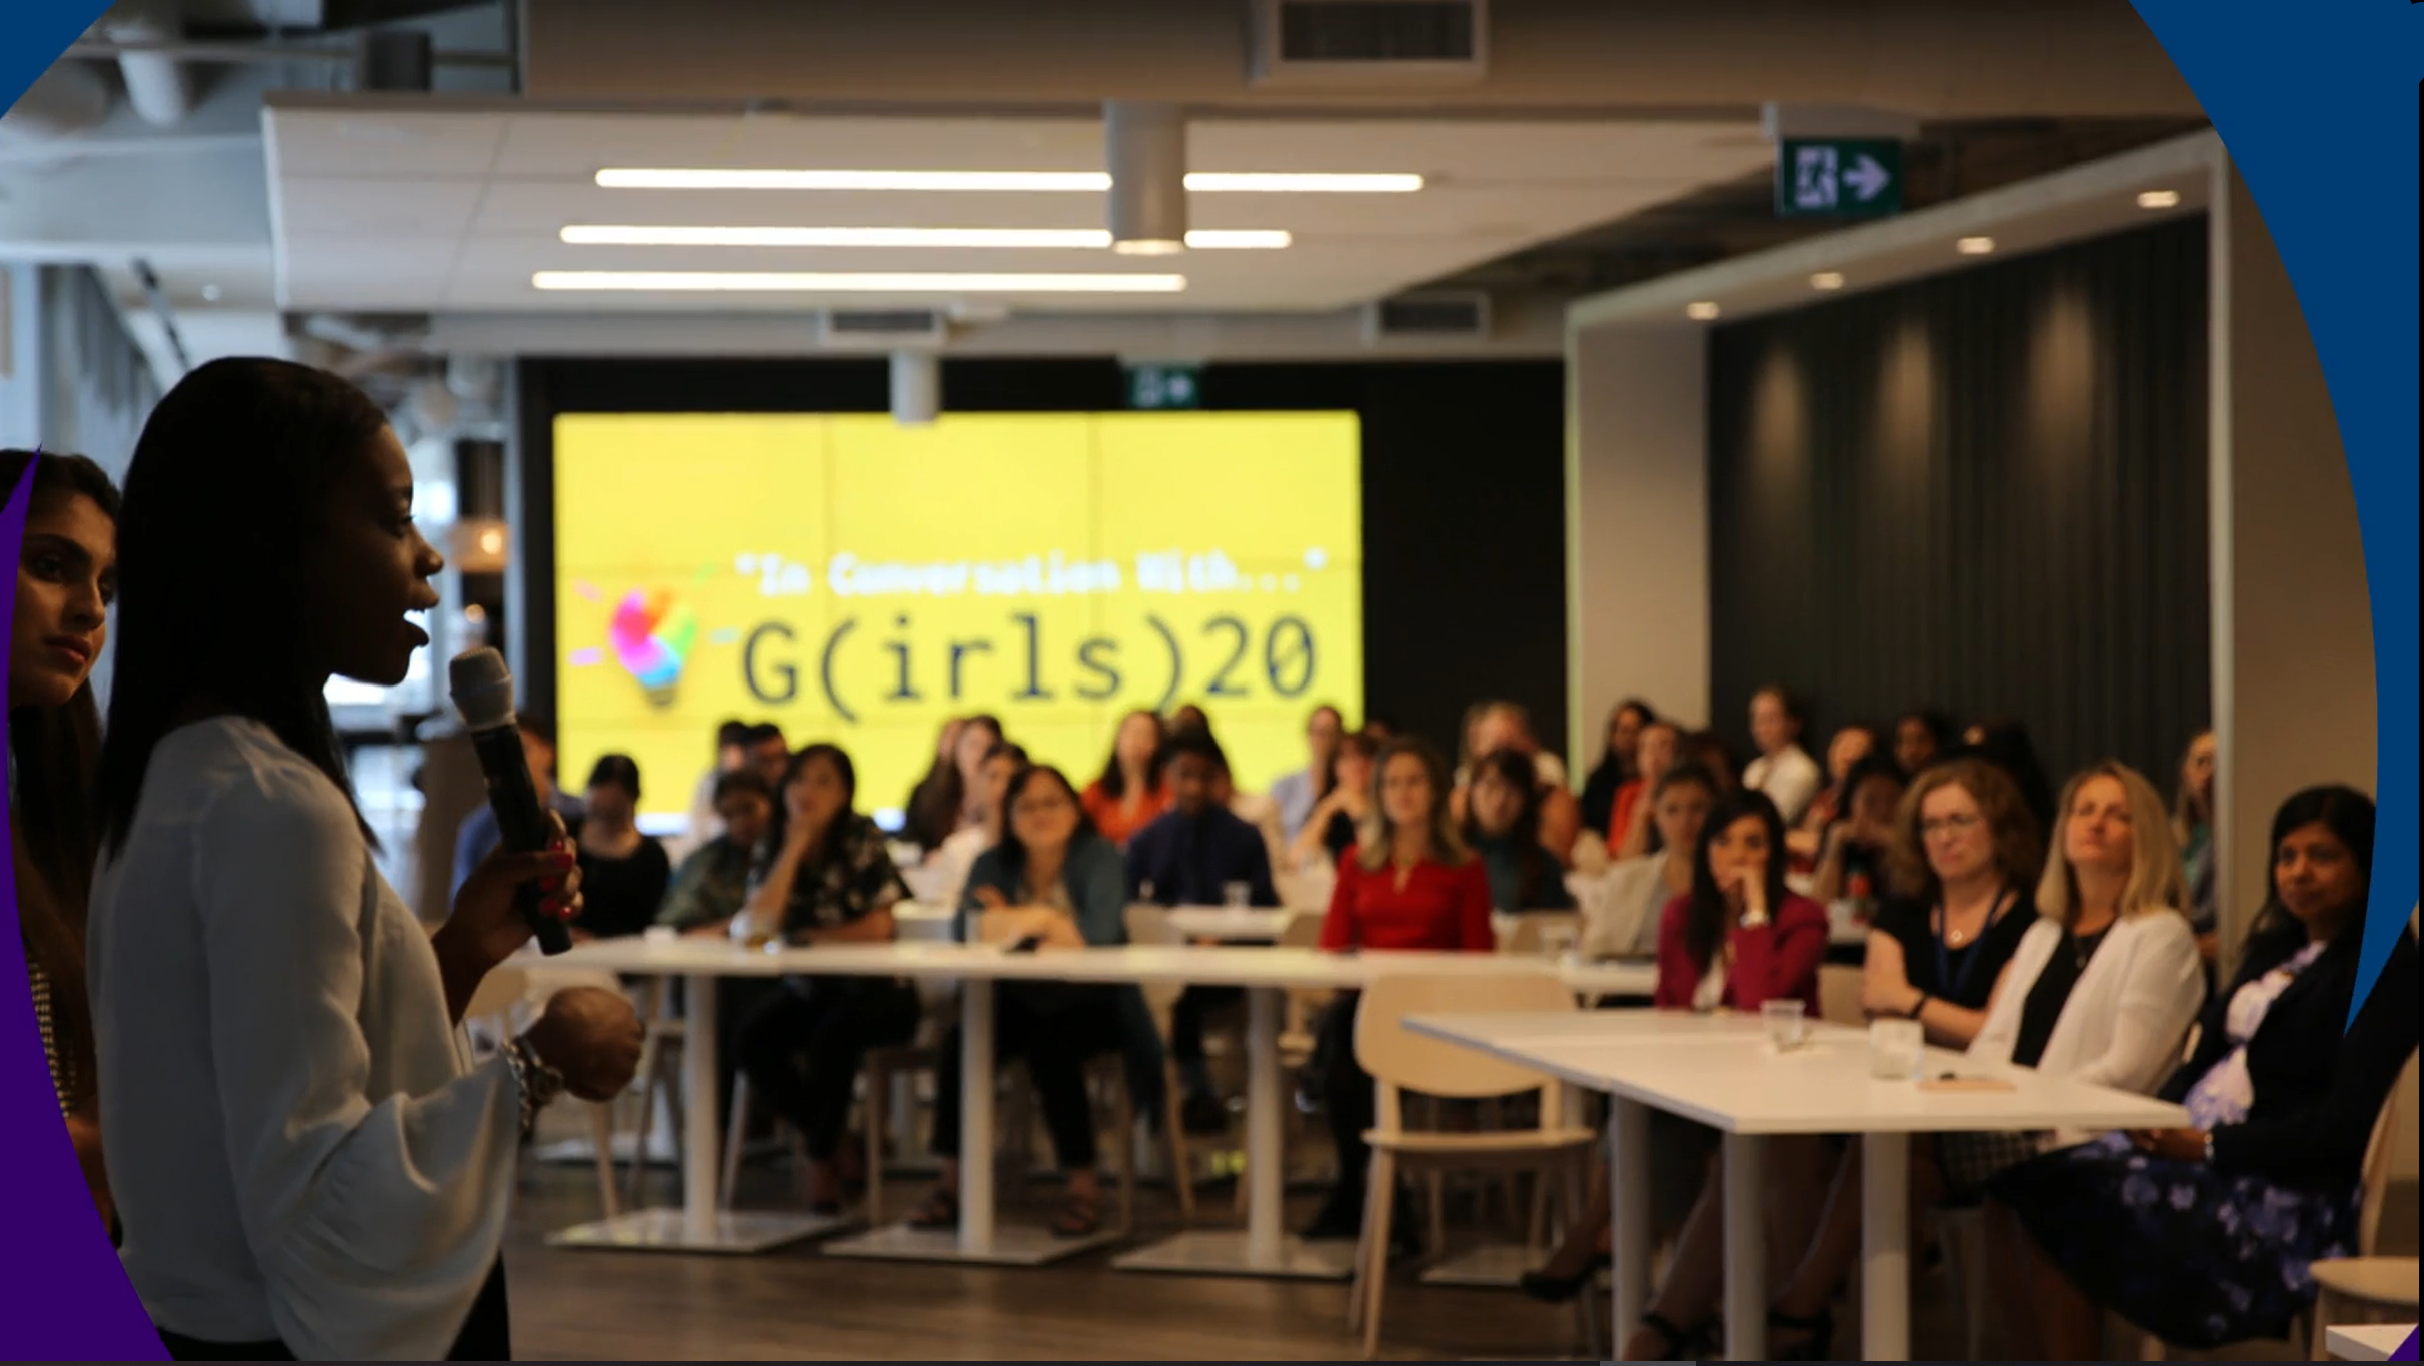 A young woman presenting in front of a group of people in an office for the G(irls)20